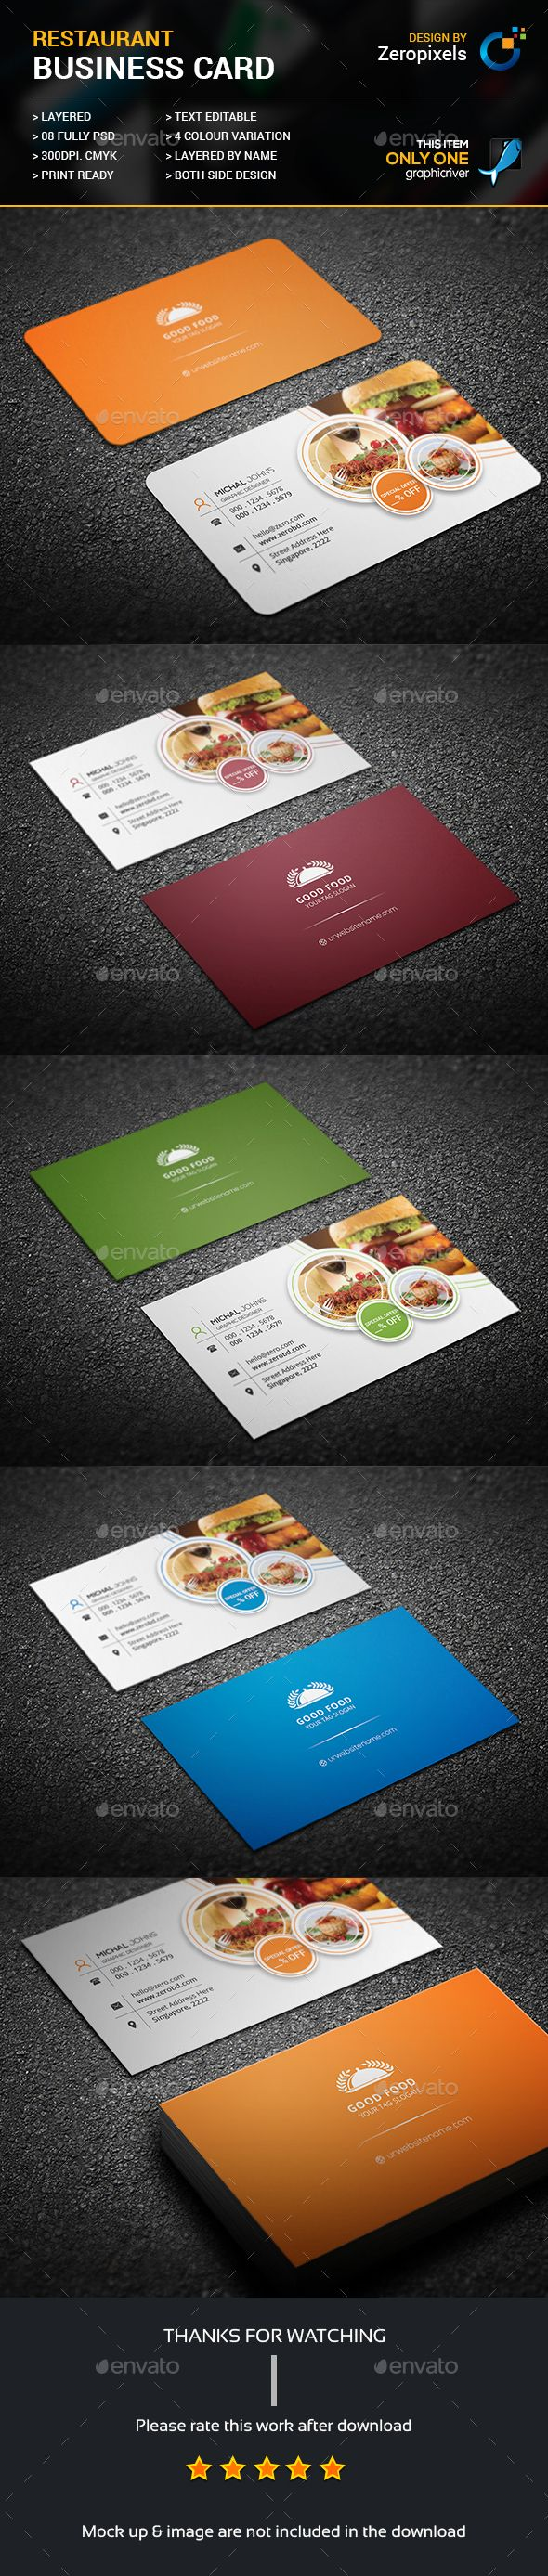 features easy customizable and editable business card in with bleed cmyk color design in 300 dpi resolut